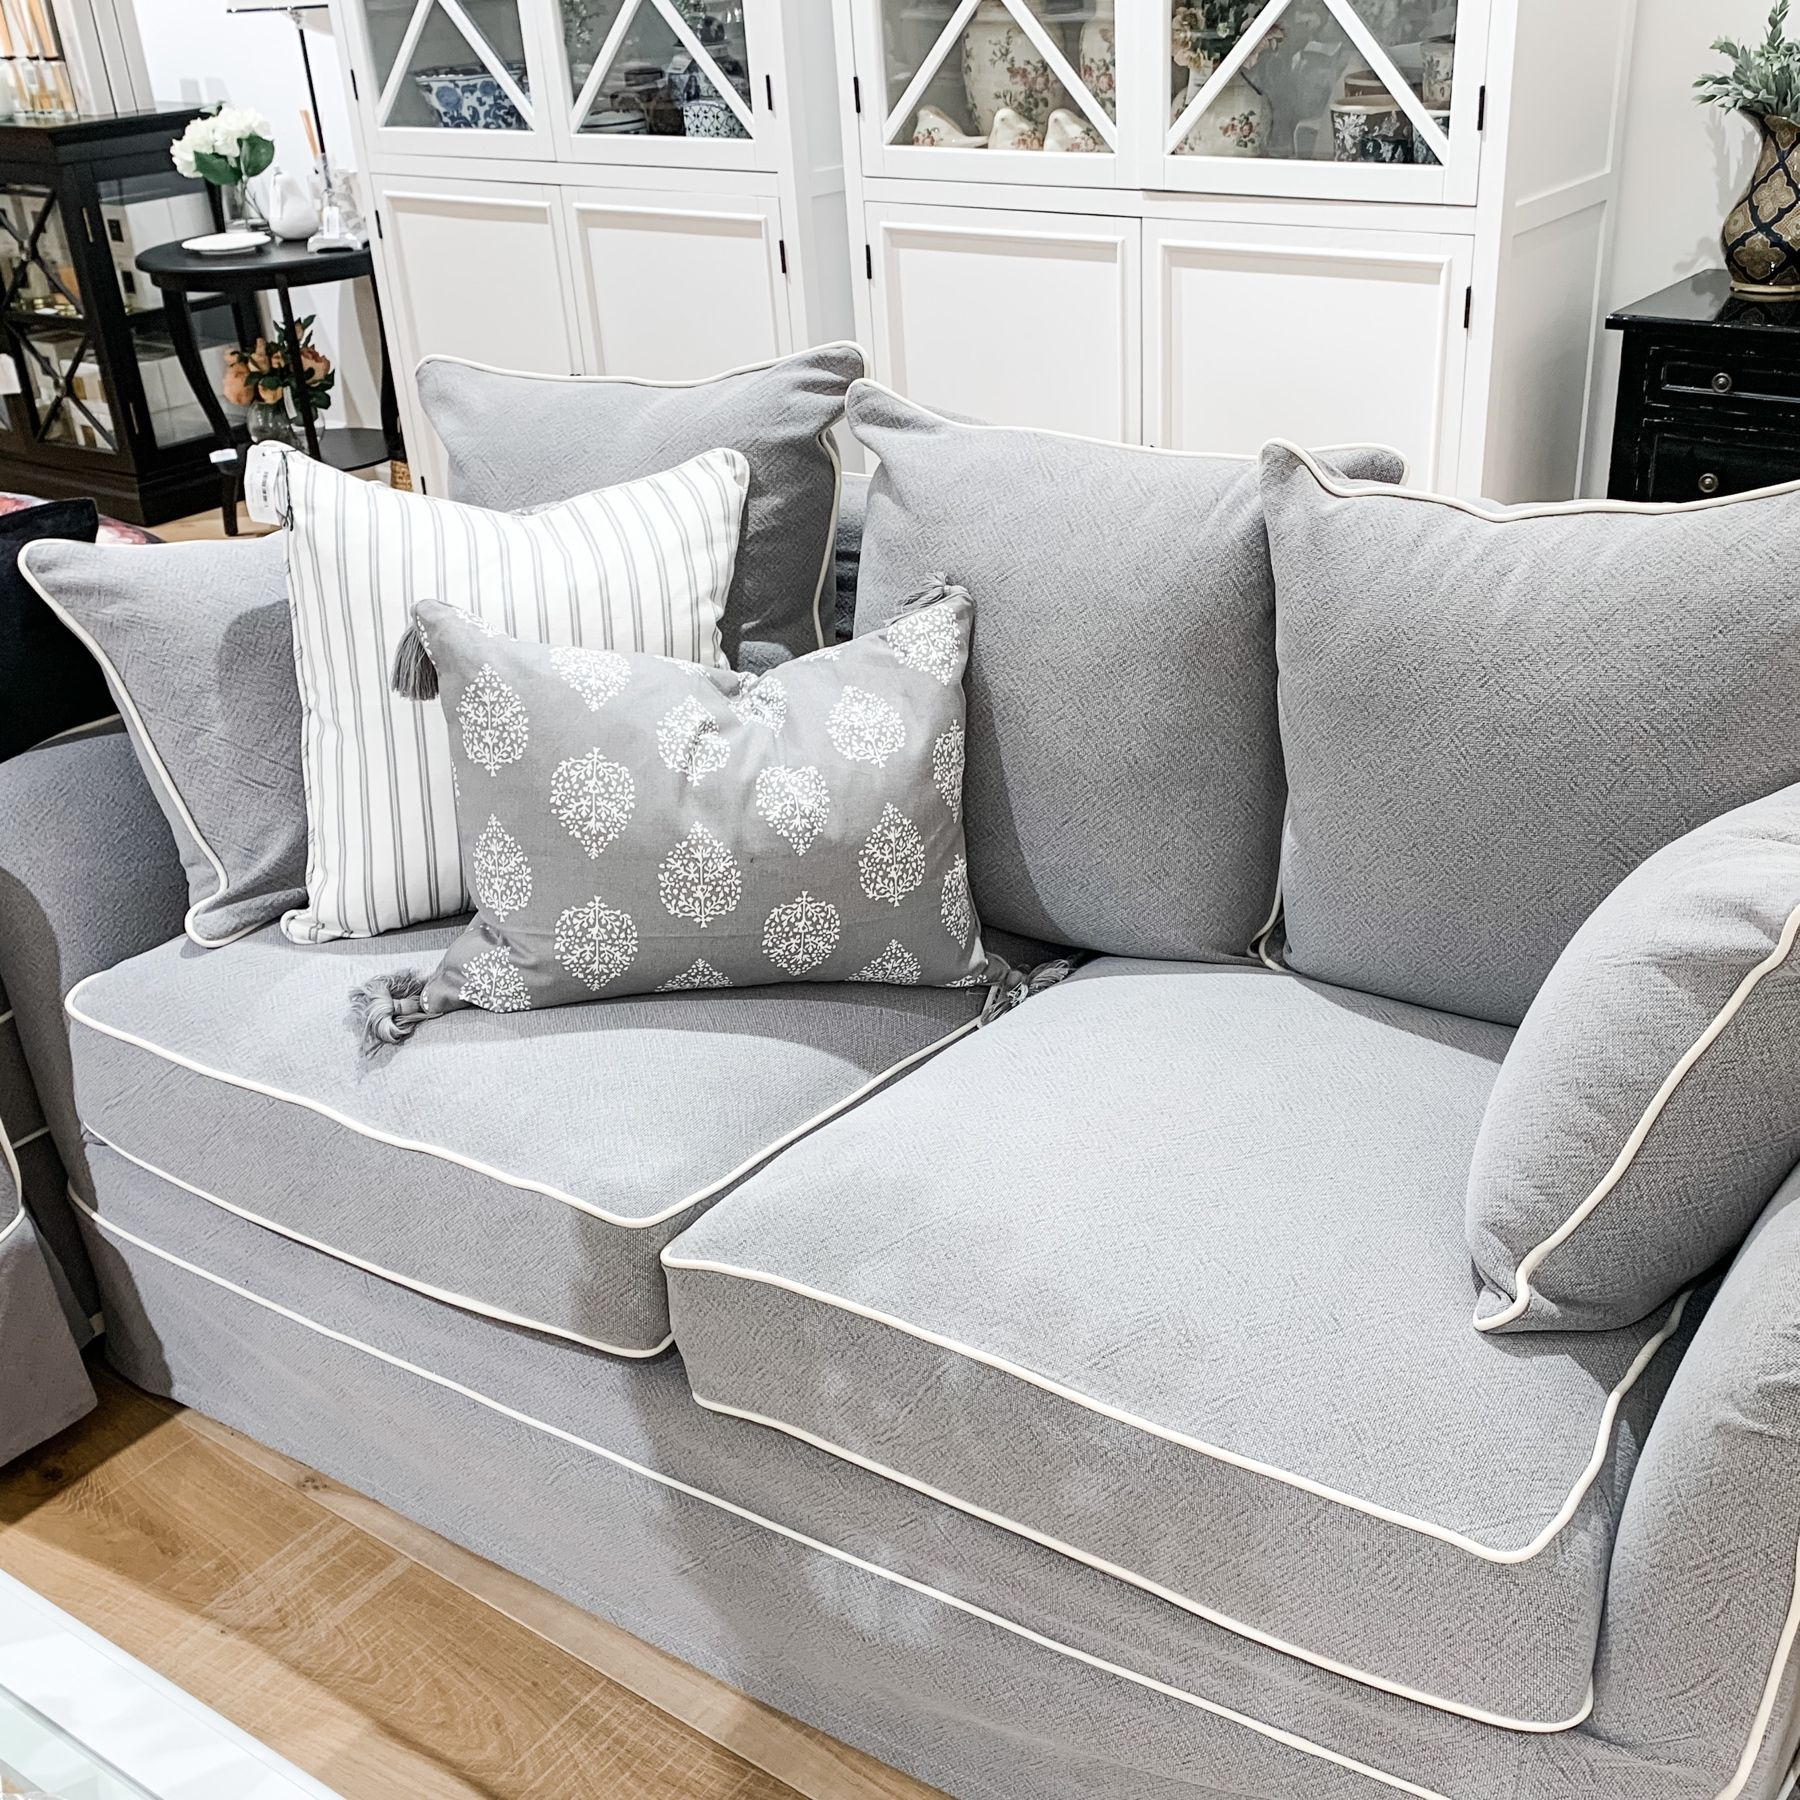 Our Cape Cod 2 Seater Sofa Combines Comfort And Class The Plush Cushion Inners Are Made From In 2020 Local Furniture Stores Lounge Cushions Black And White Furniture